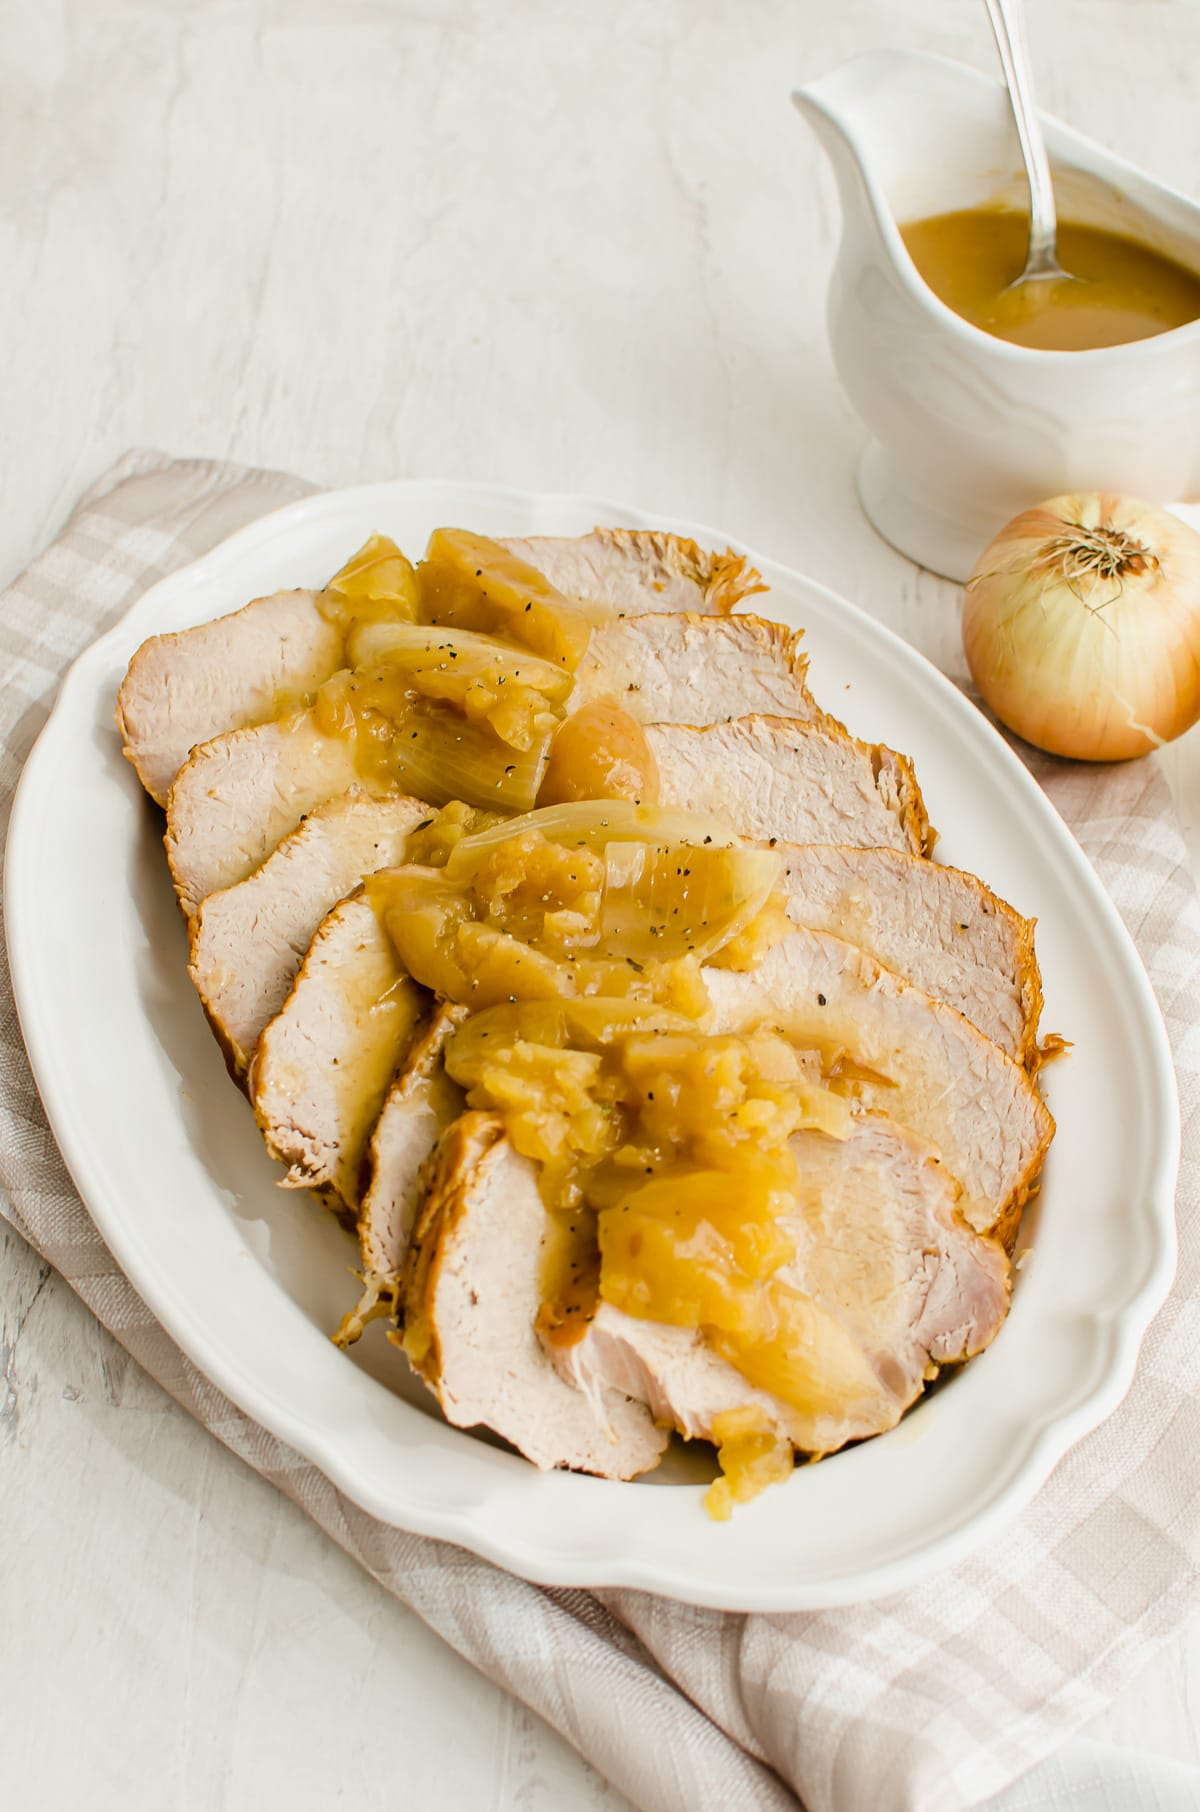 Slices of pork loin with apples and onions on a white platter with a gravy boat on the side.